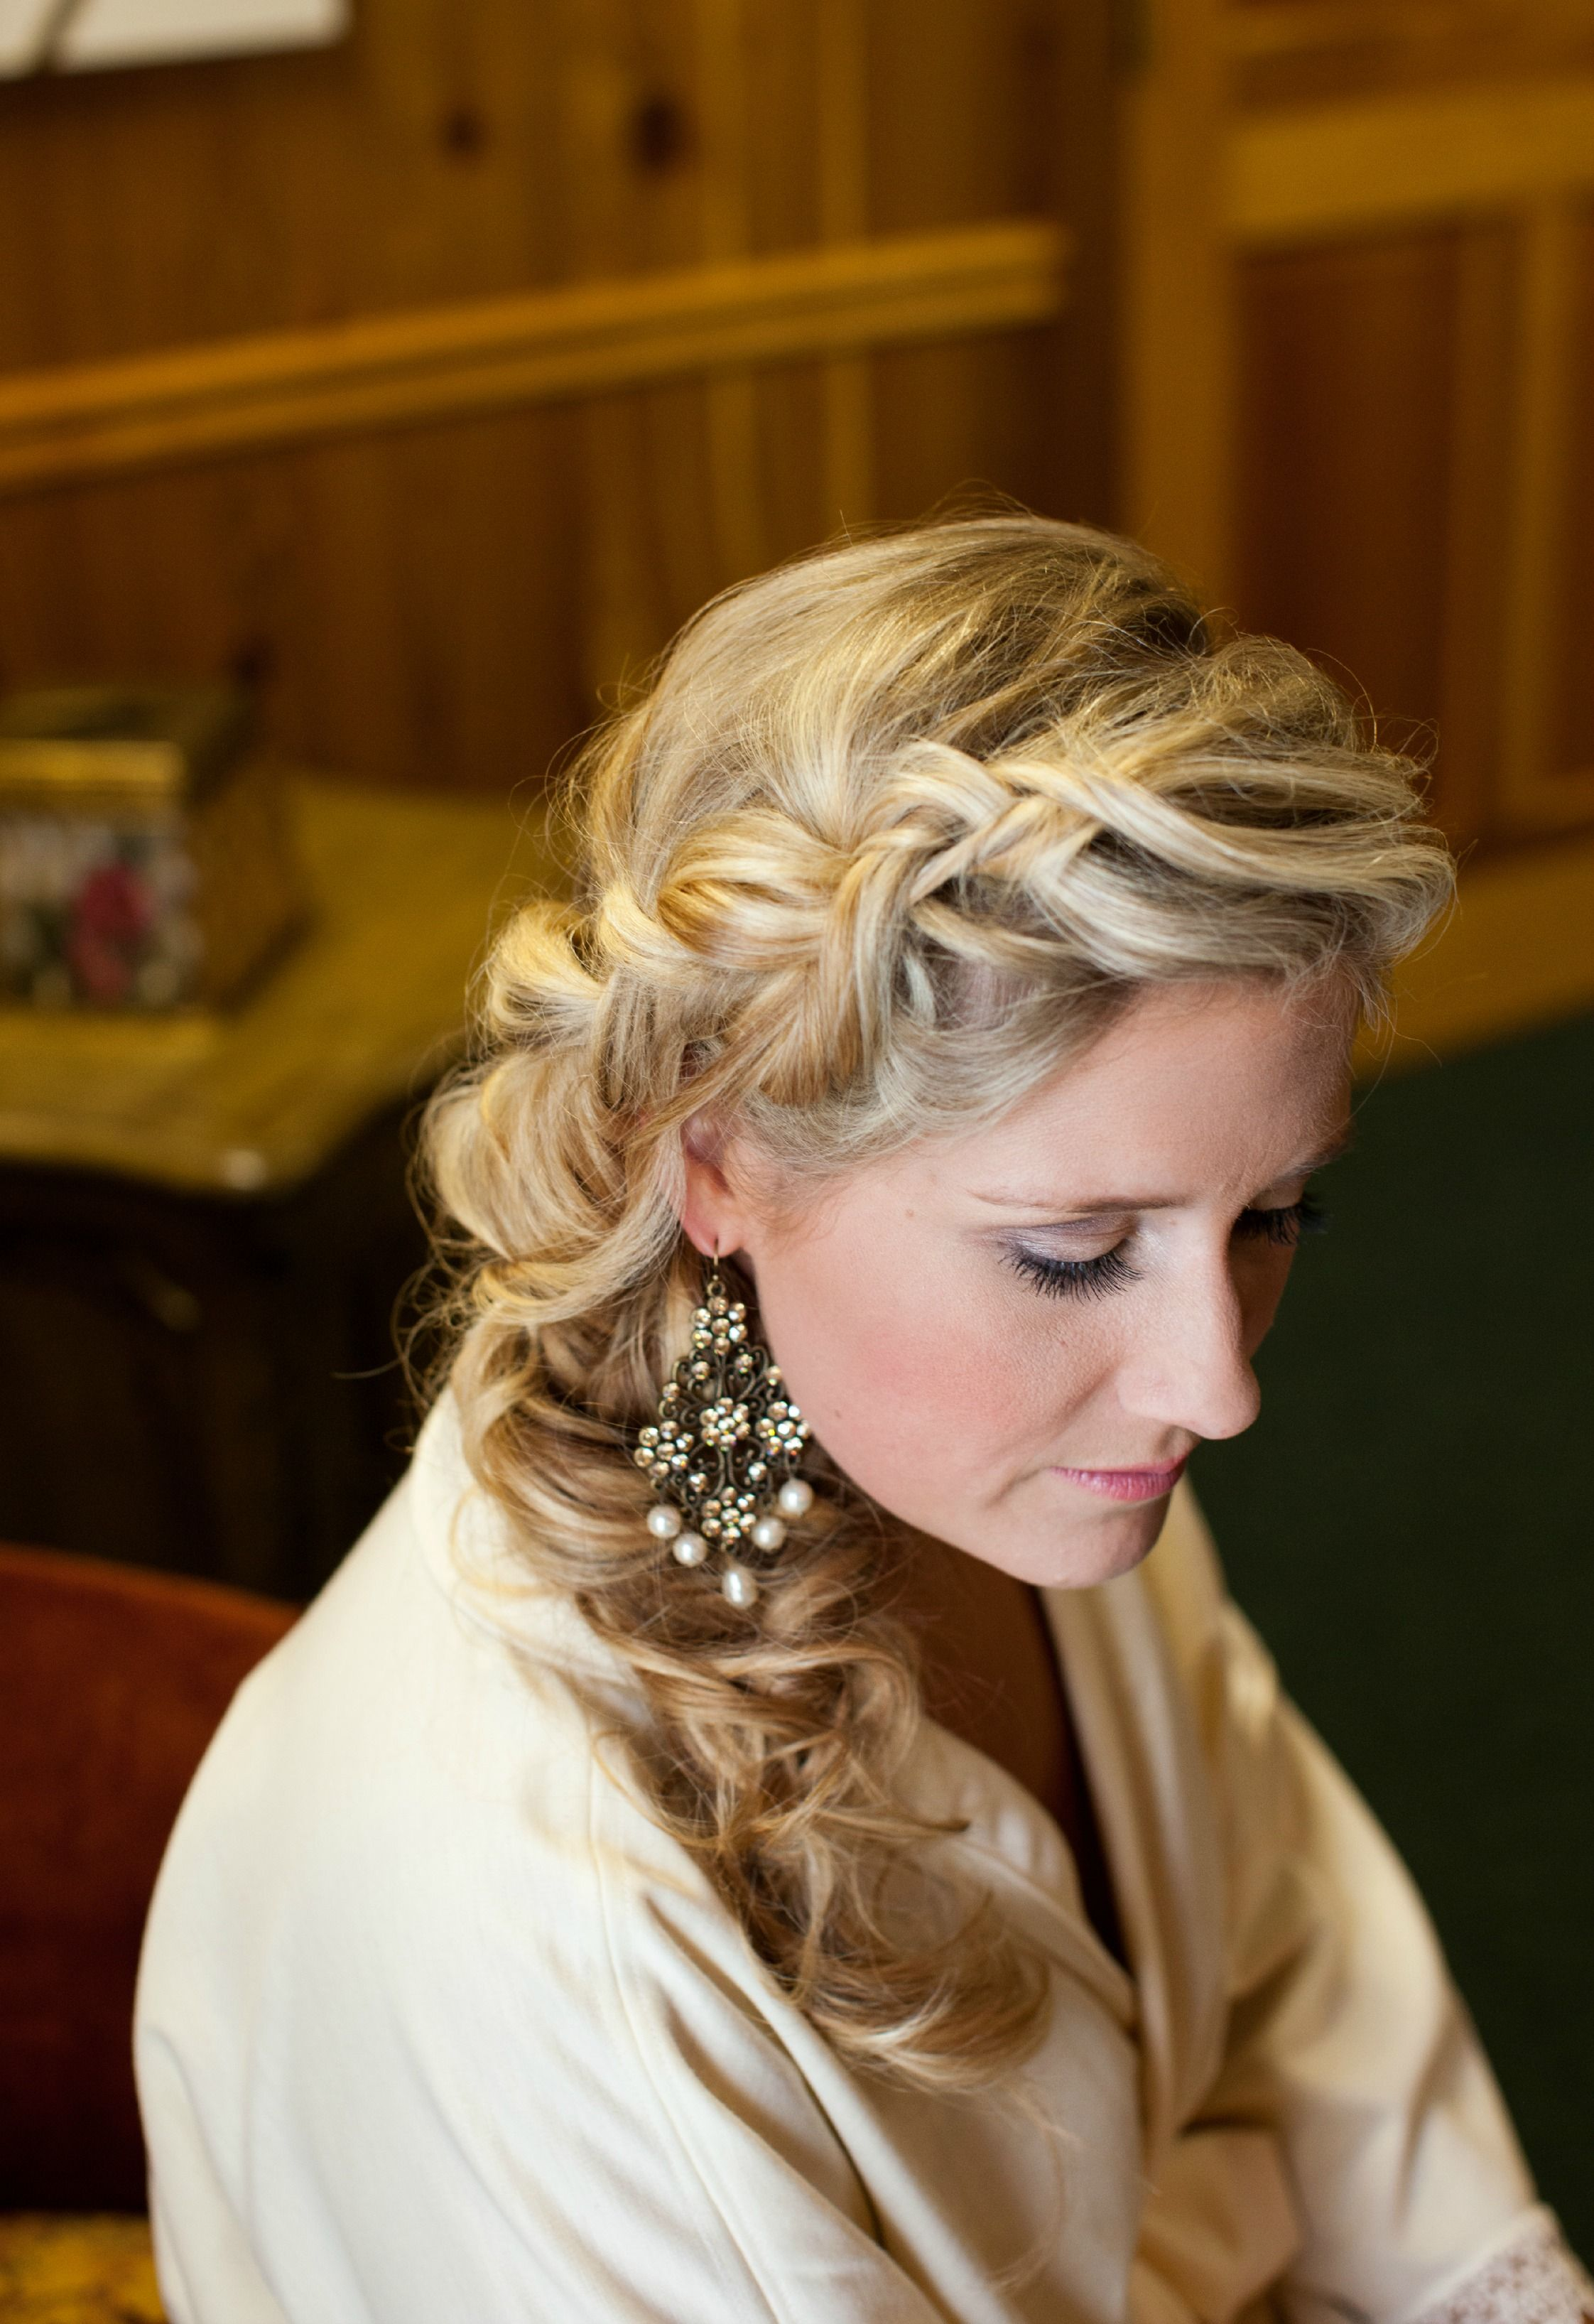 My bridal updo - messy side braid.